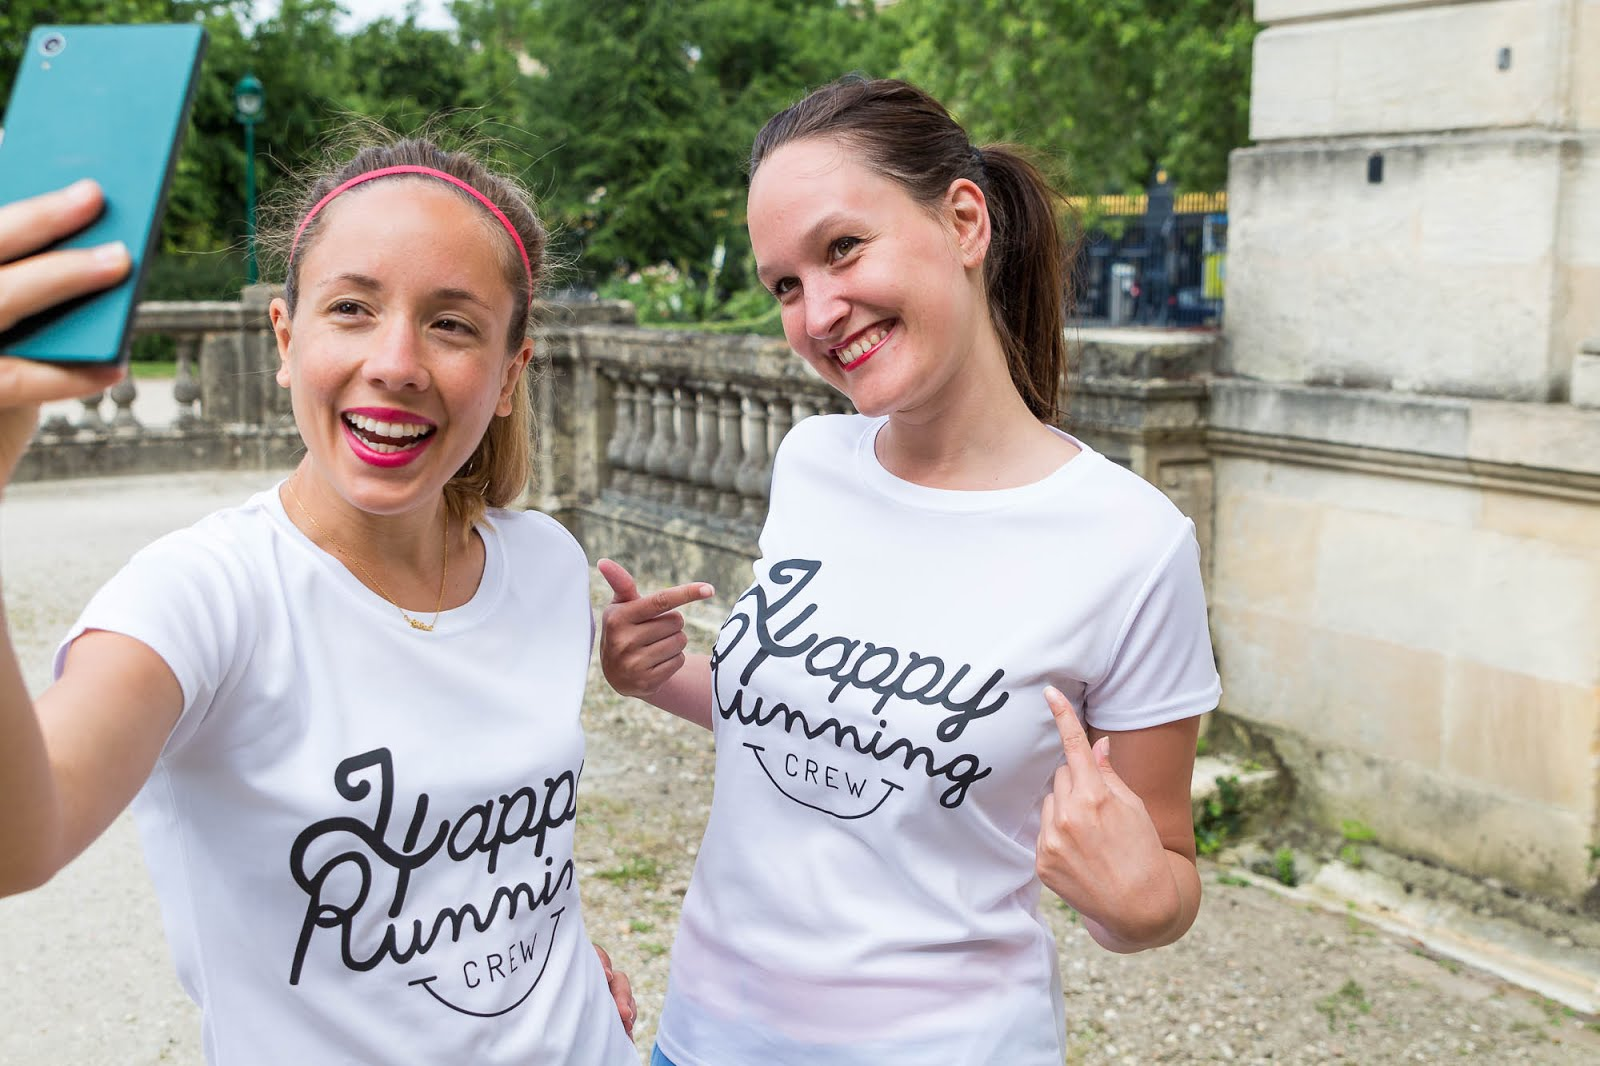 Communauté Happy Running Crew